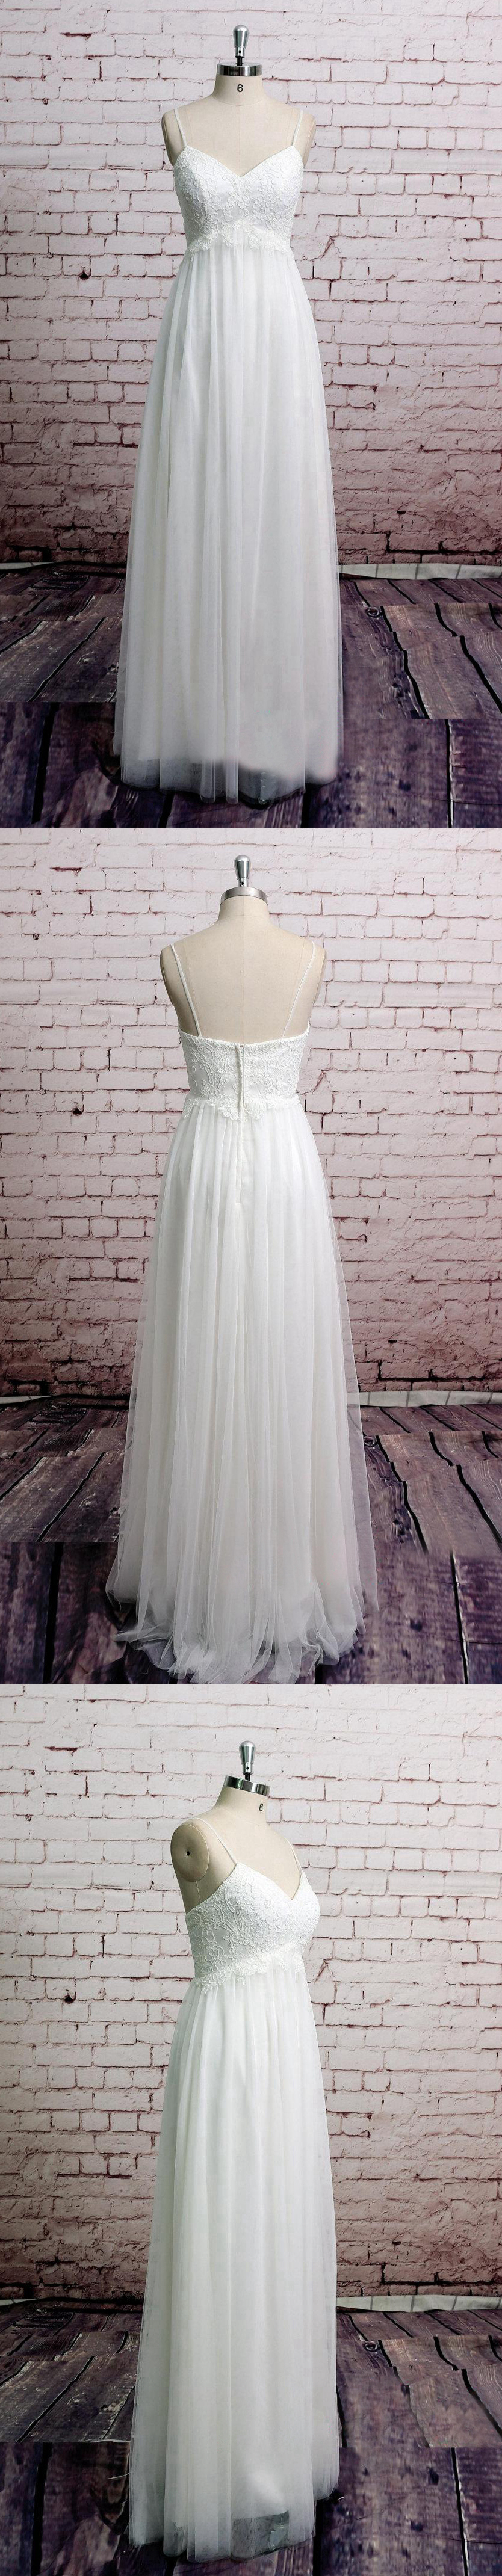 Corset for under wedding dress  Pin by June Bridals on Wedding Dress on Mannequin  Pinterest  Lace